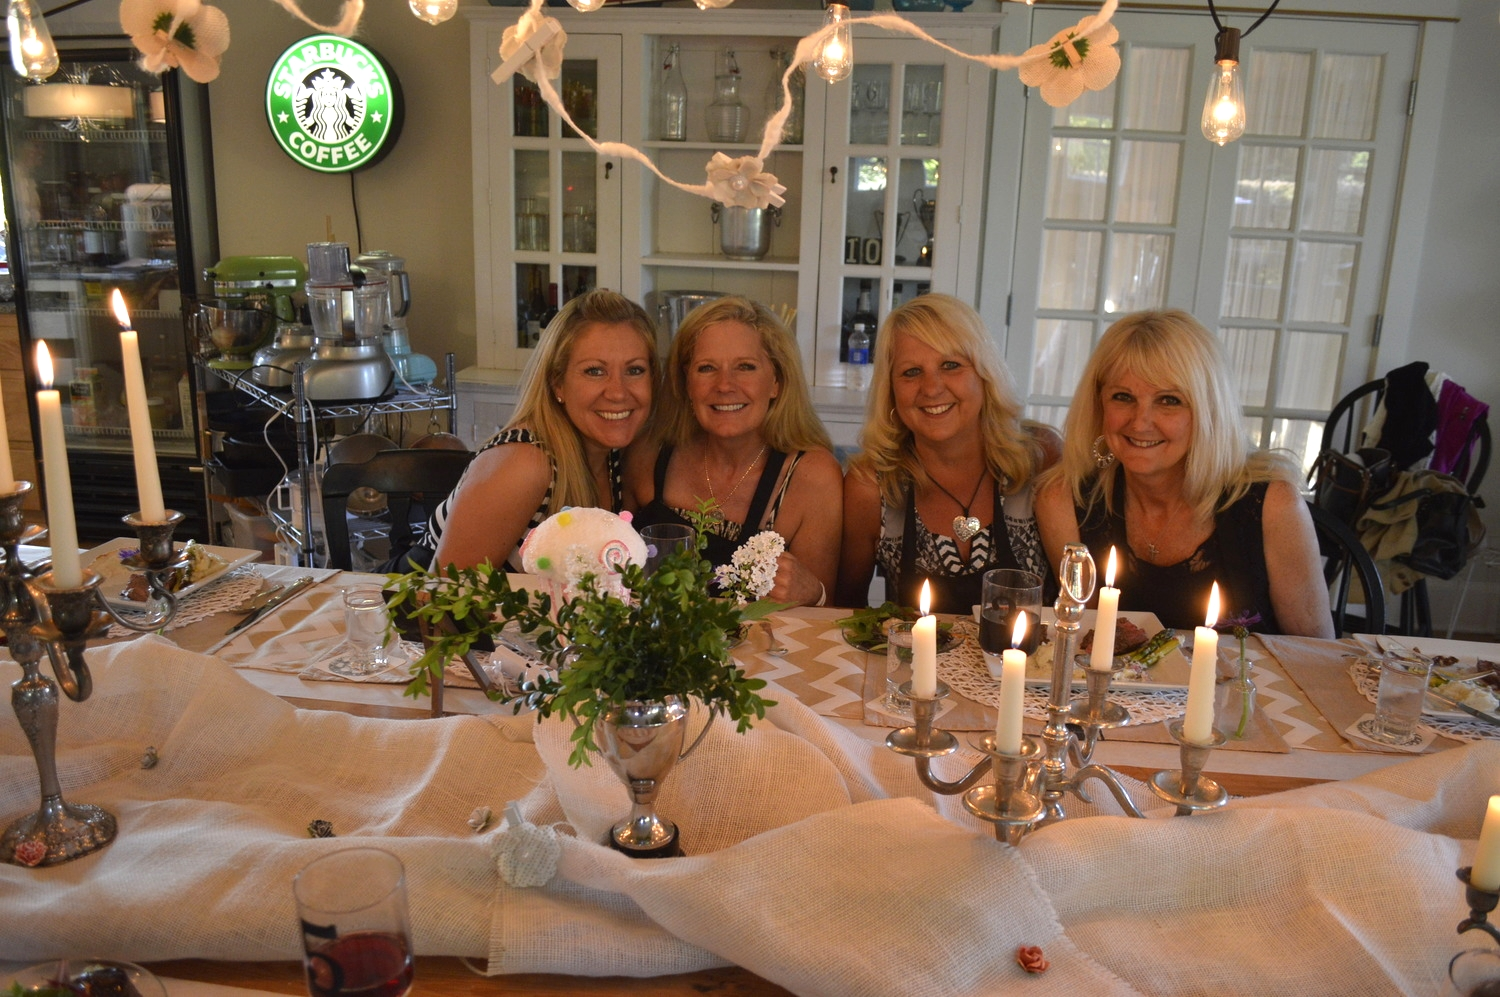 Heidi, Rhonda, Claire, and Jill